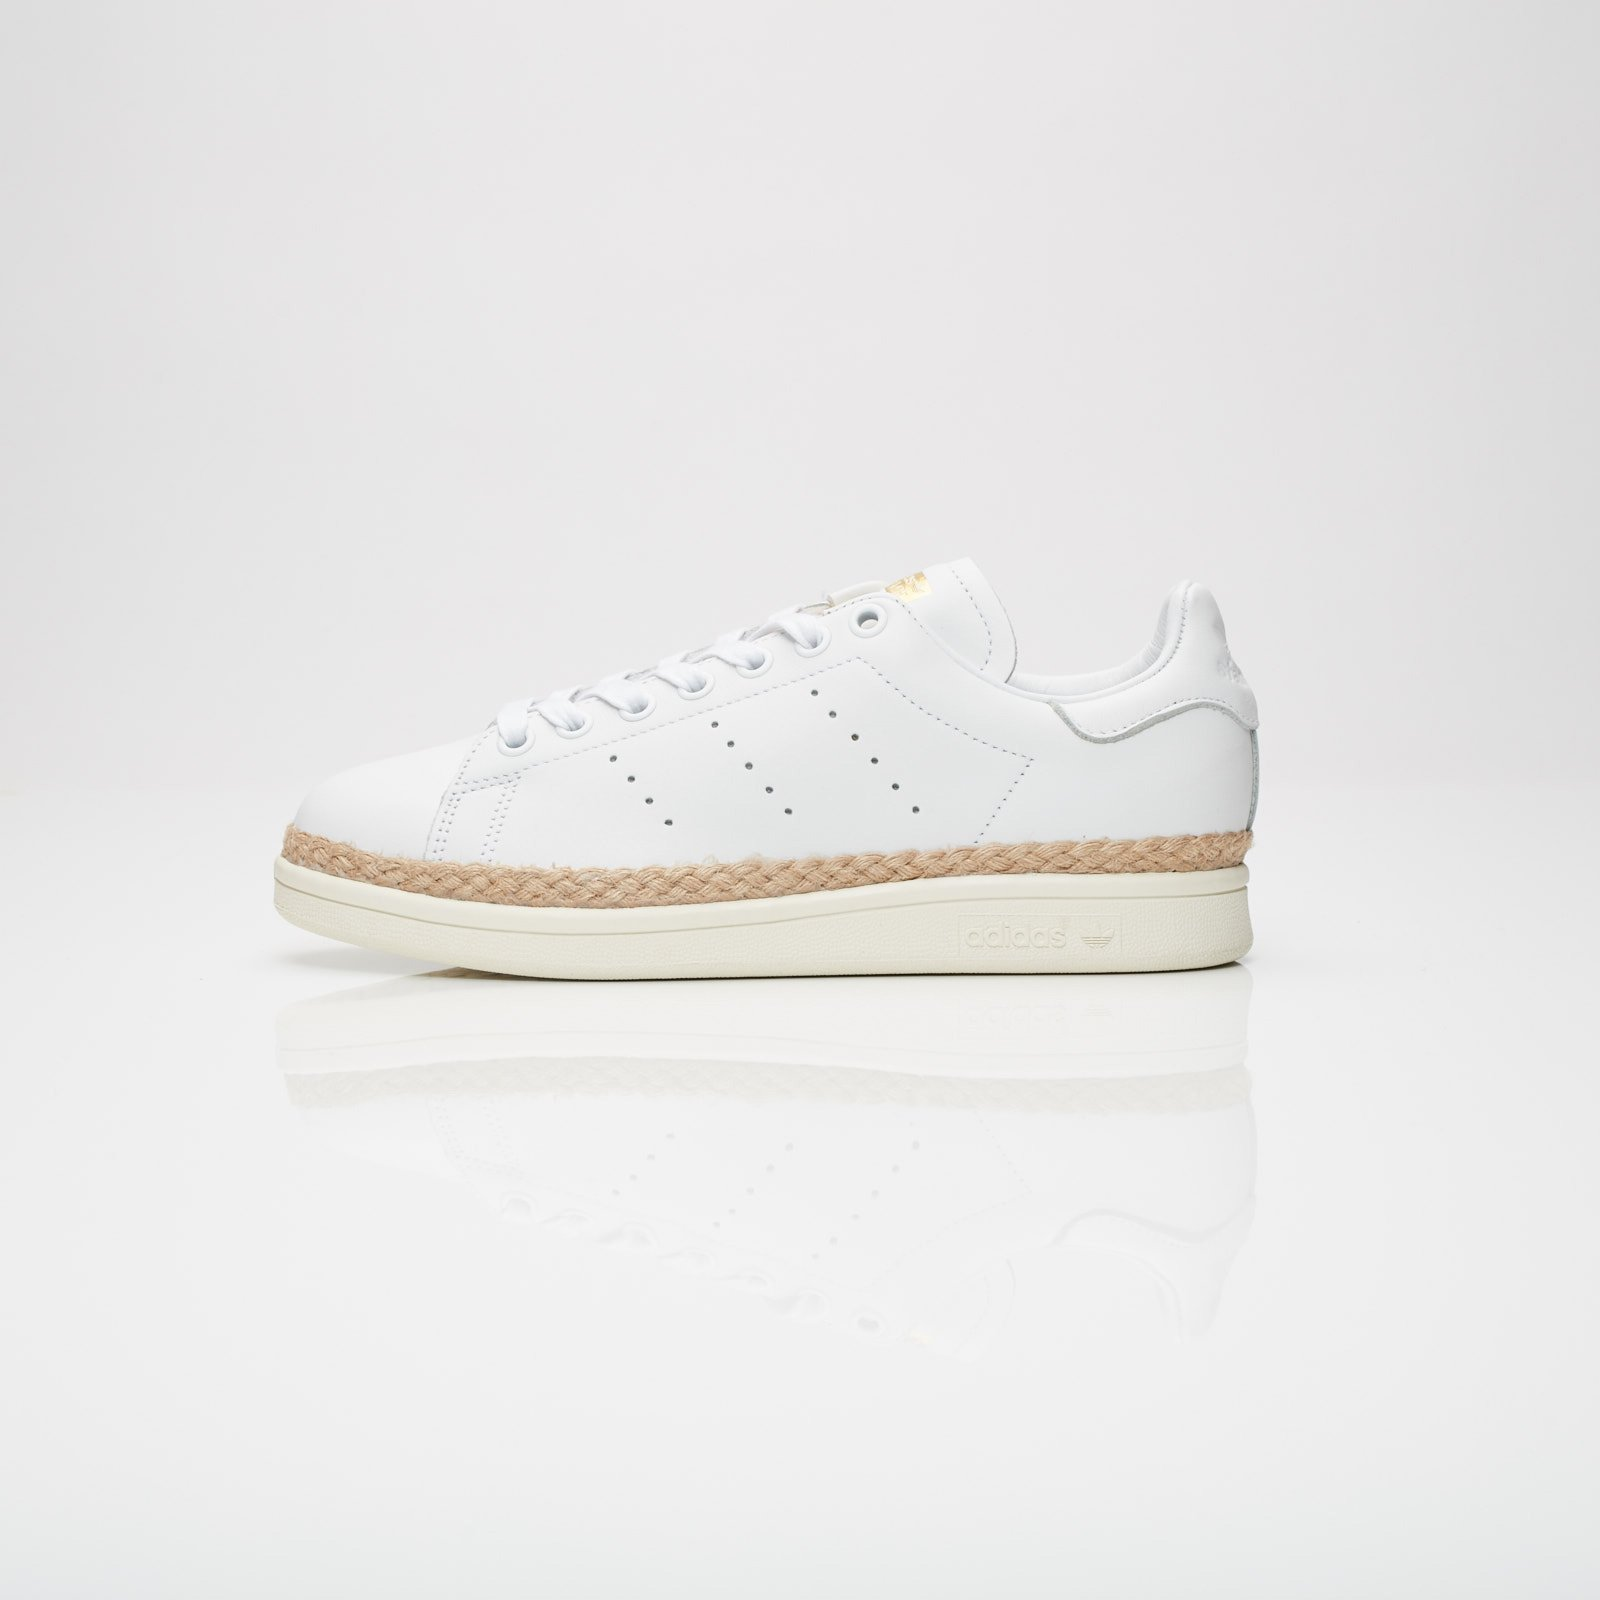 design intemporel 3a8ca 42836 adidas Stan Smith New Bold - Cq2439 - Sneakersnstuff ...